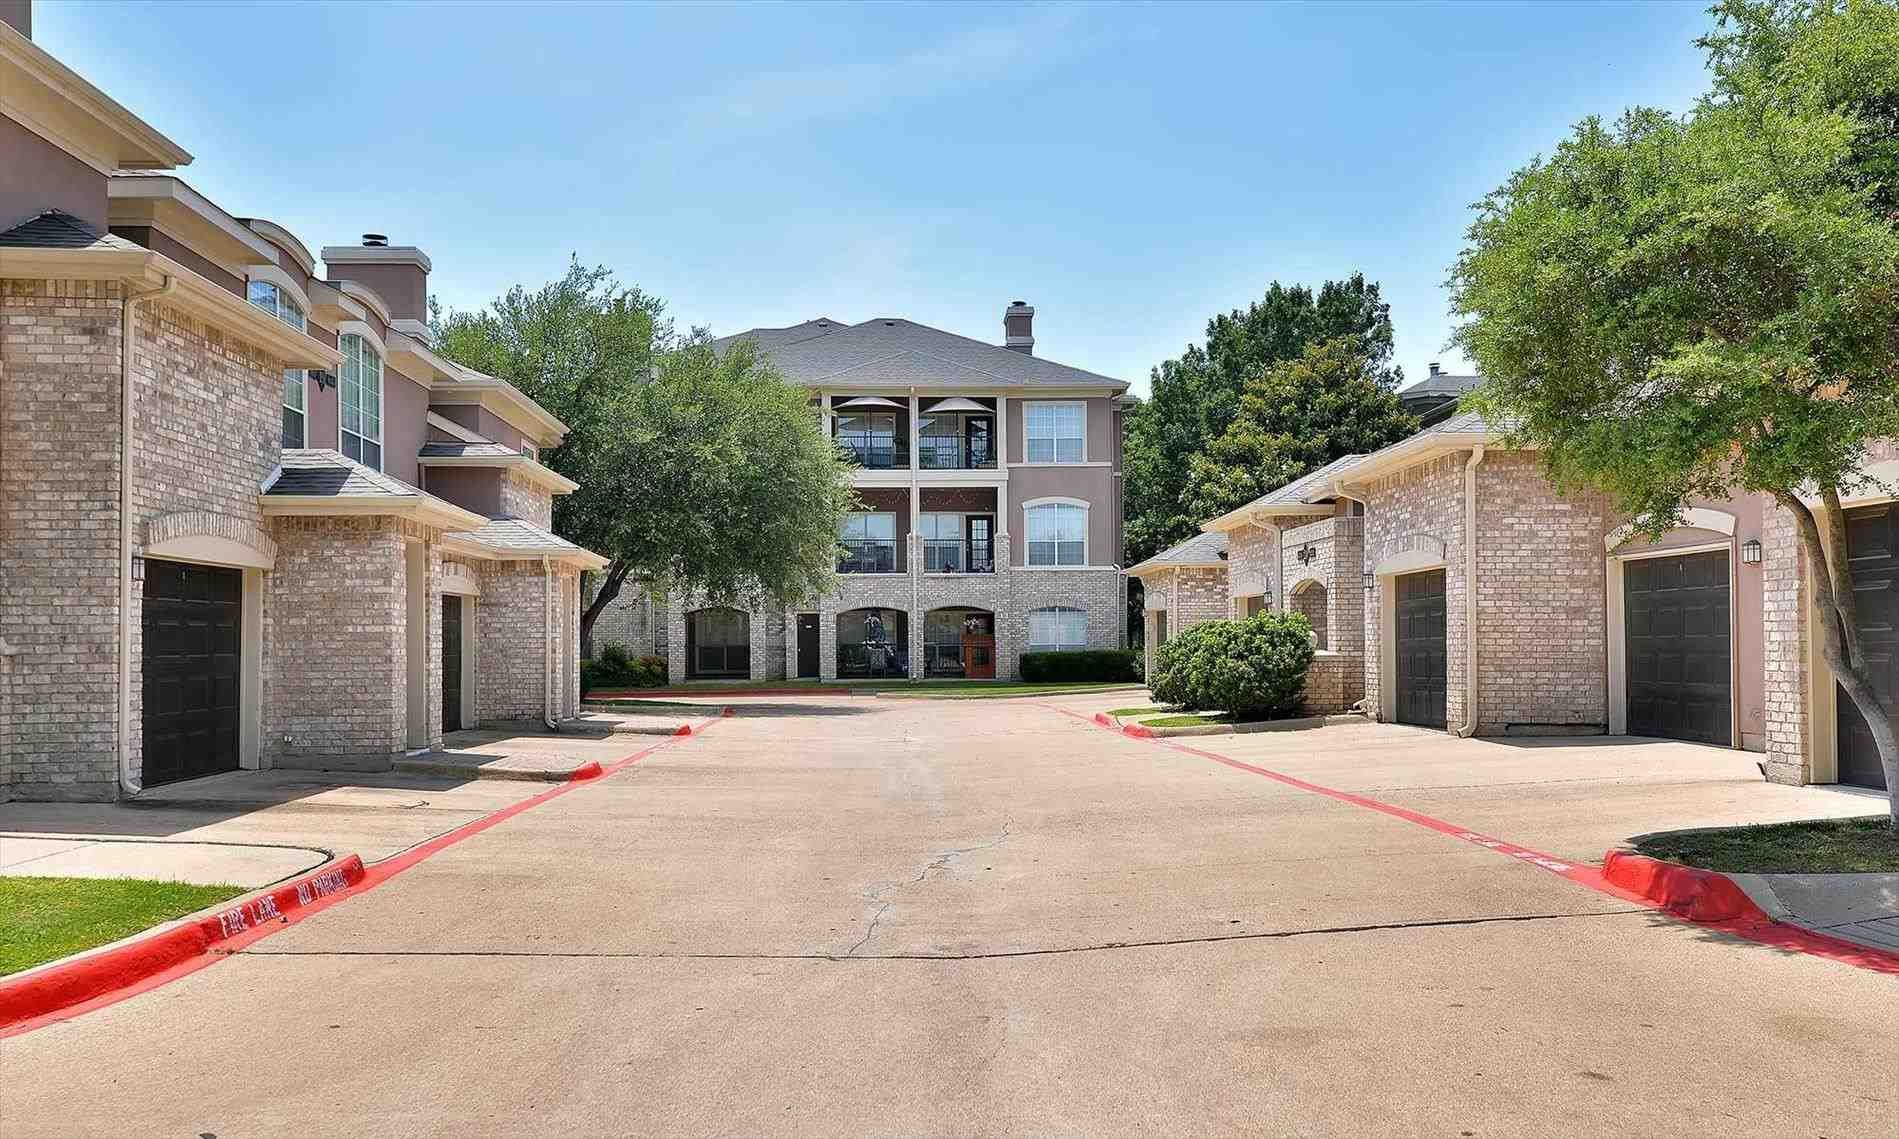 Apartment Plano Project Summary 400 North Ervay Apartments For Rent In Dallas Tx Capital One Plano Free Apartme House Styles Apartment Apartments For Rent